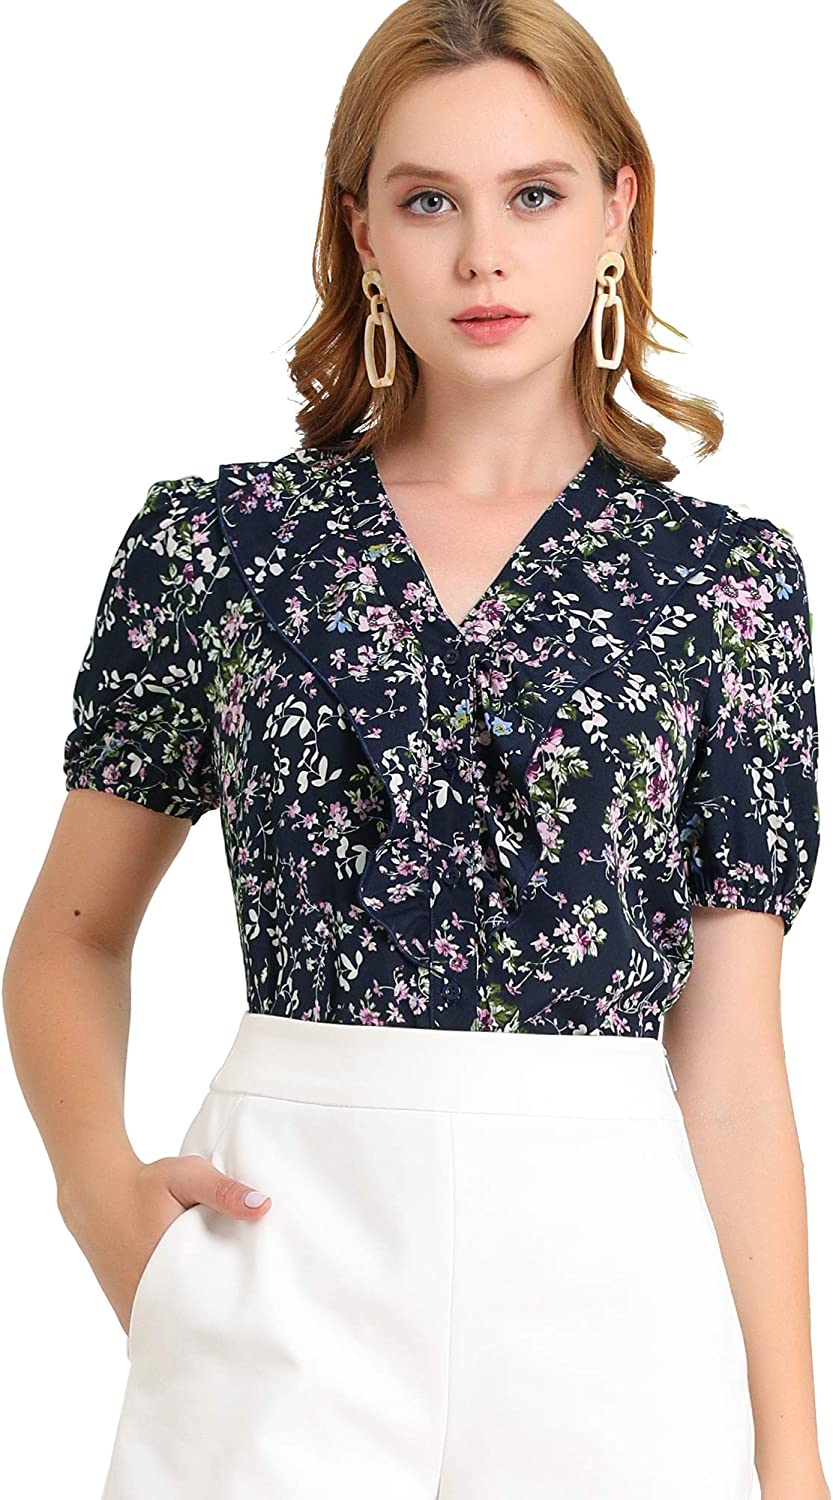 1940s Blouses and Tops Allegra K Womens Floral V Neck Blouse Puff Short Sleeves Button Front Work Shirt Top $19.99 AT vintagedancer.com